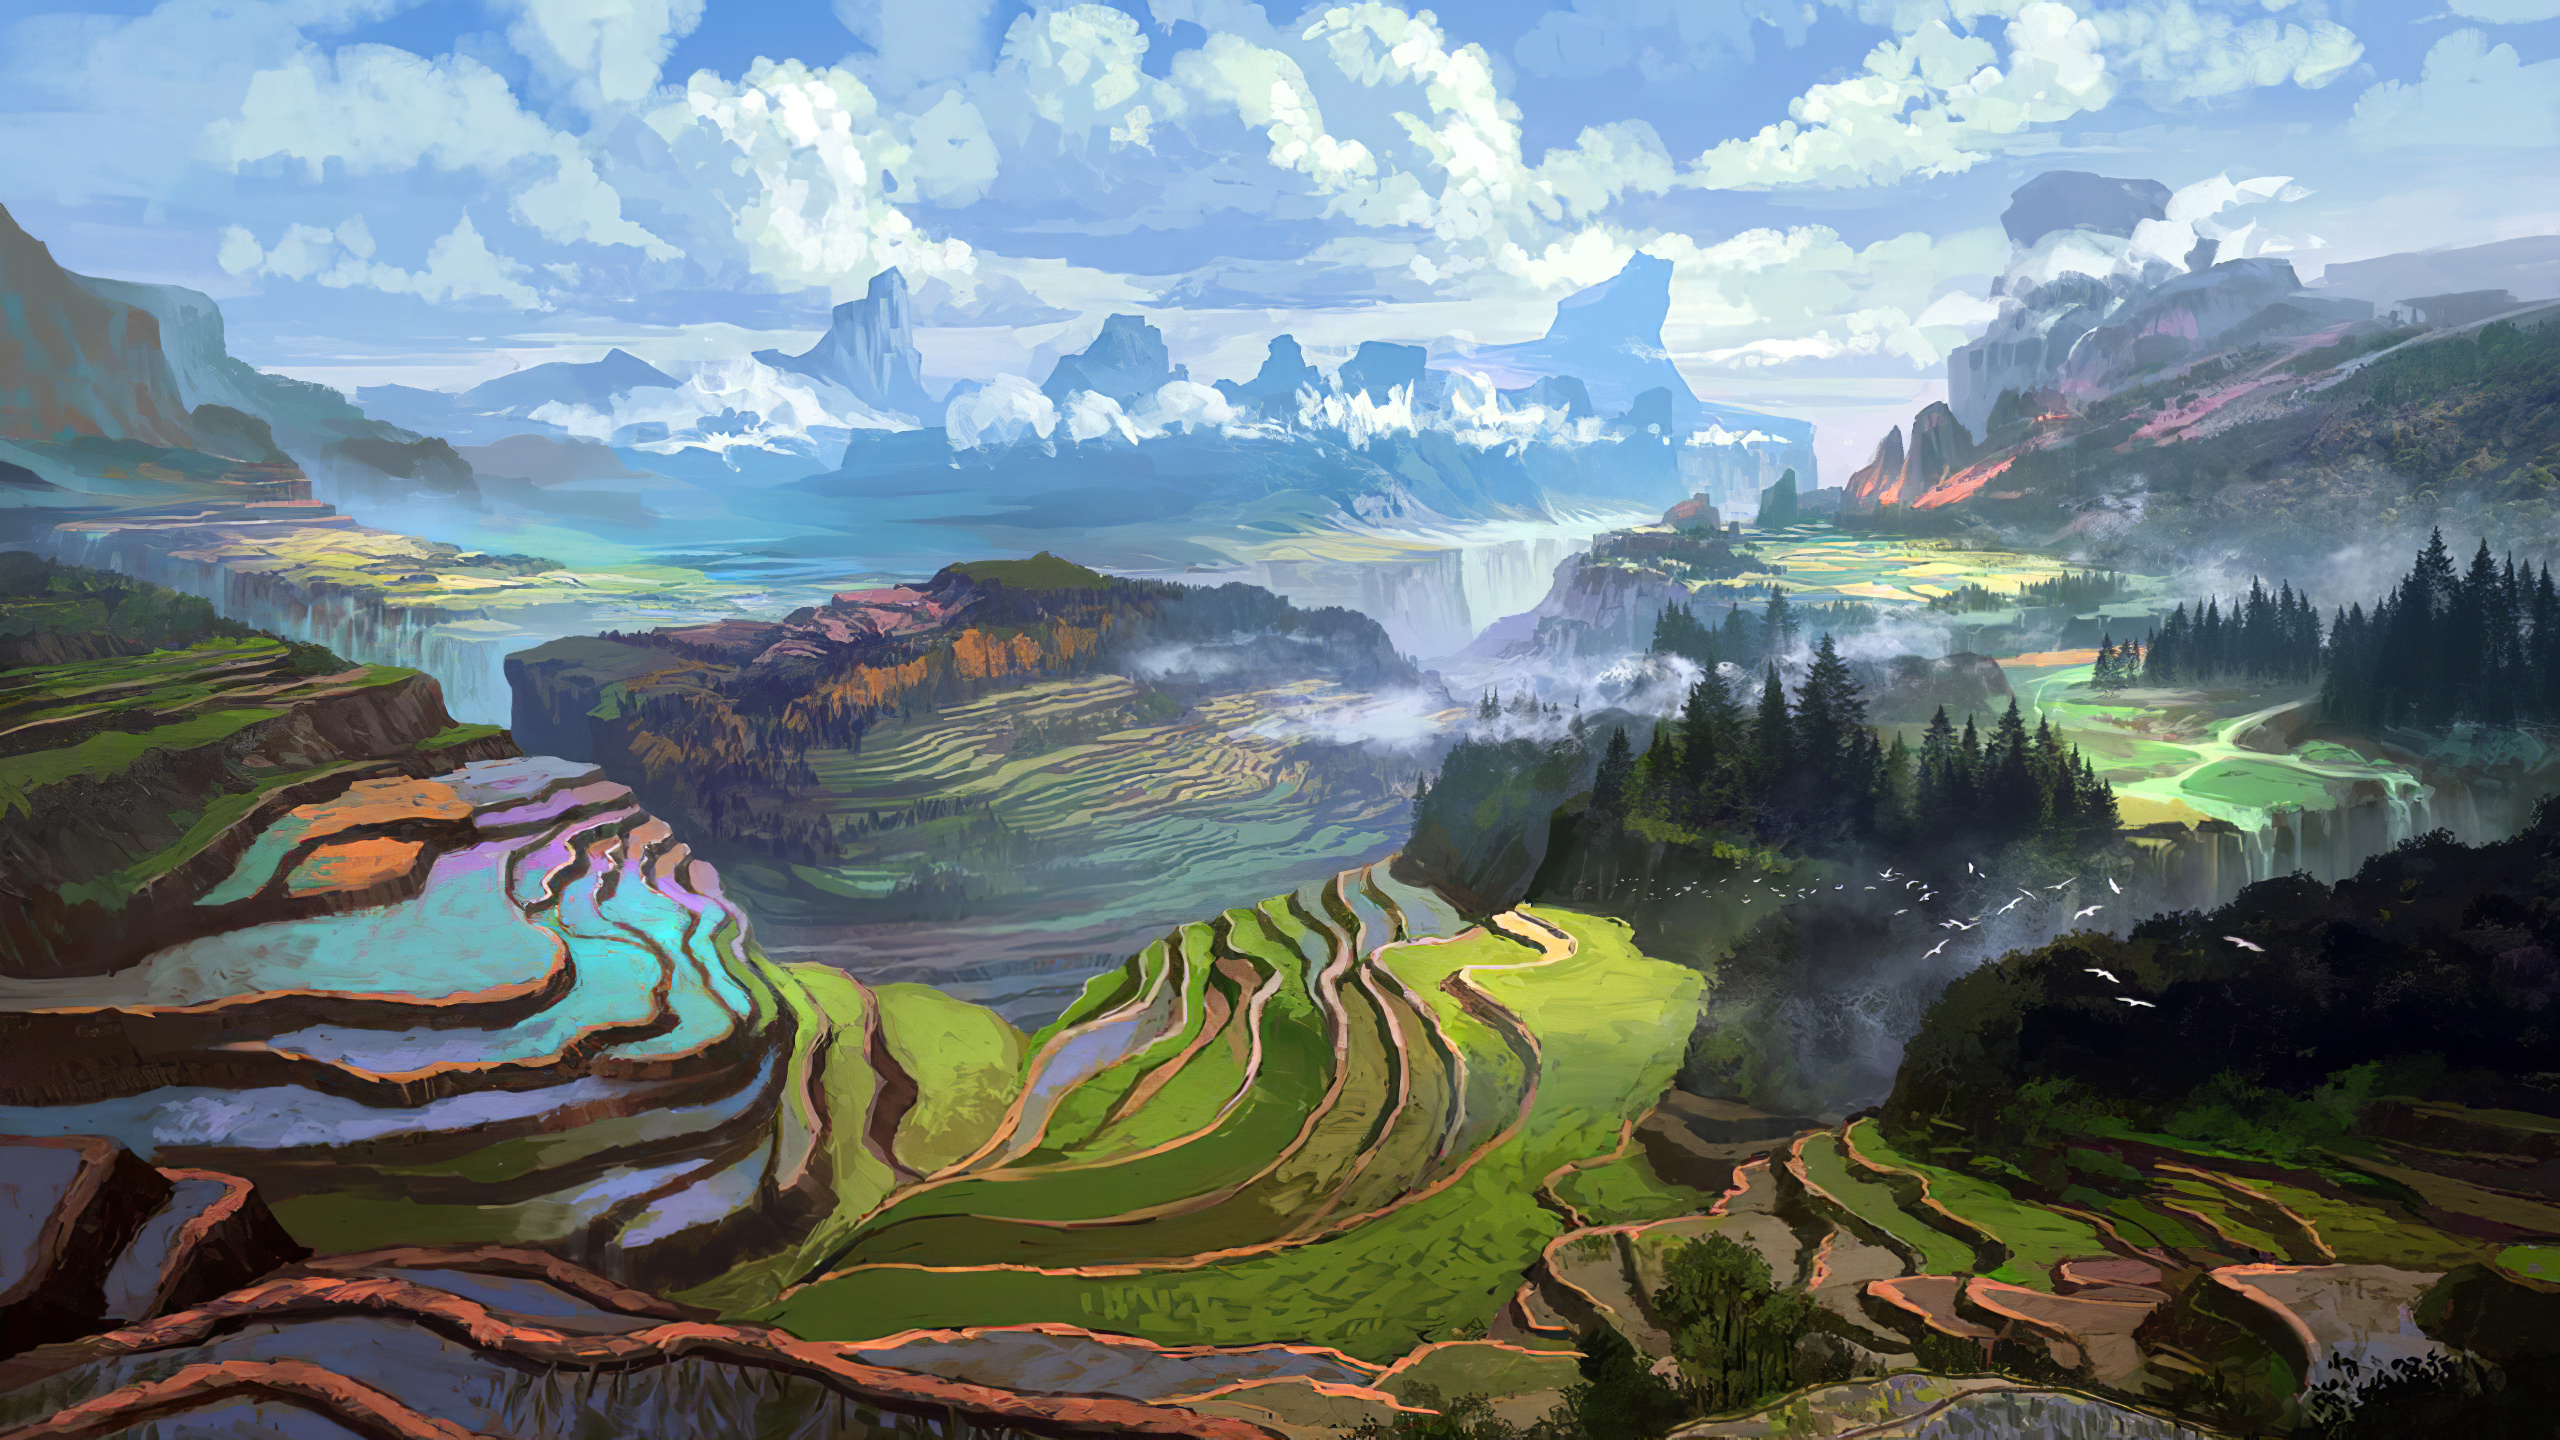 General 2560x1440 landscape nature digital mountains clouds daylight concept art Rice Terrace illustration